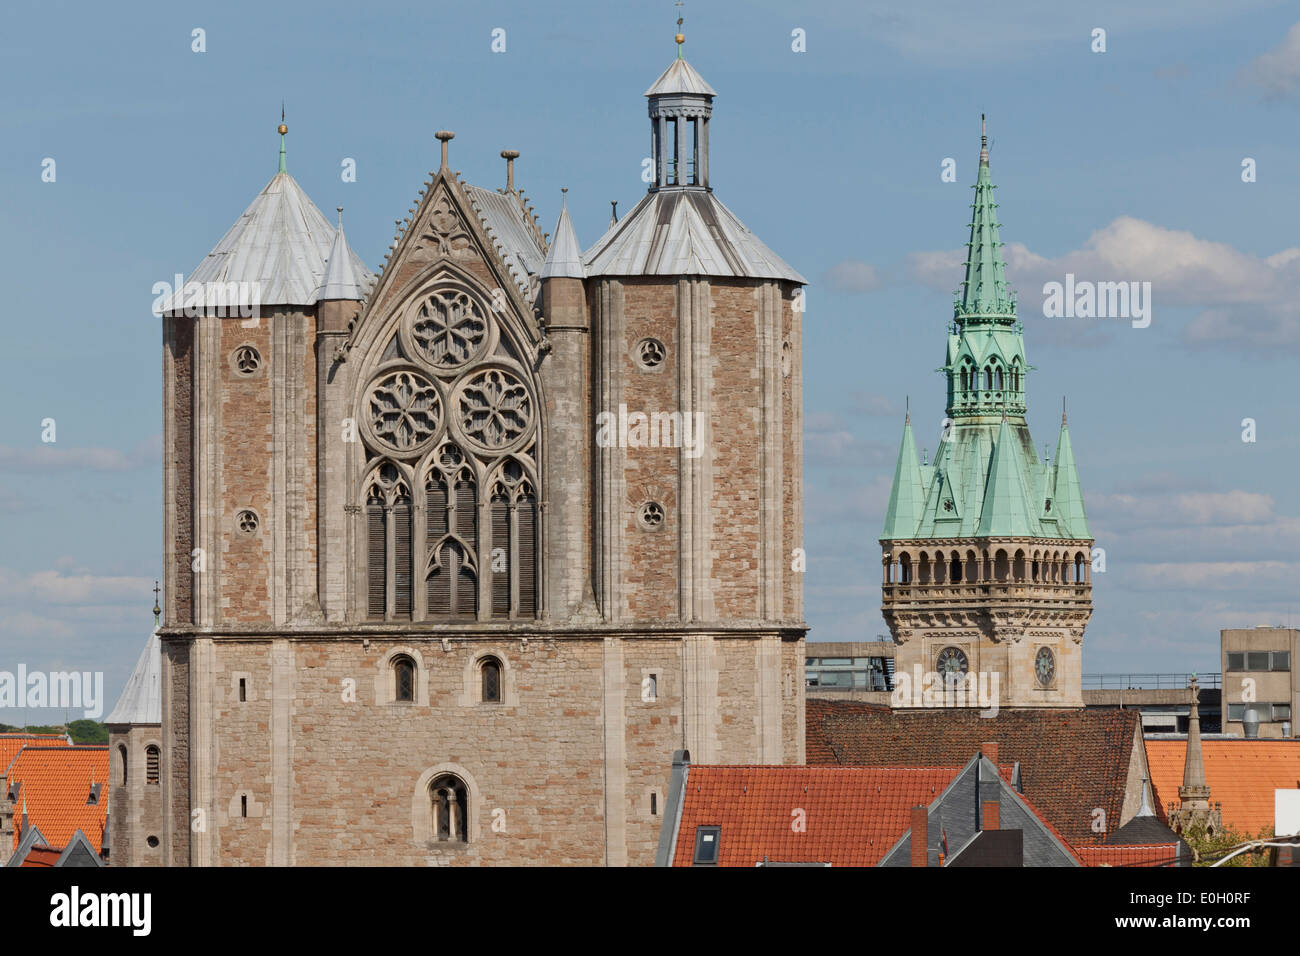 Skyline Brunswick with Brunswick cathedral and town hall, Lower Saxony, Germany - Stock Image